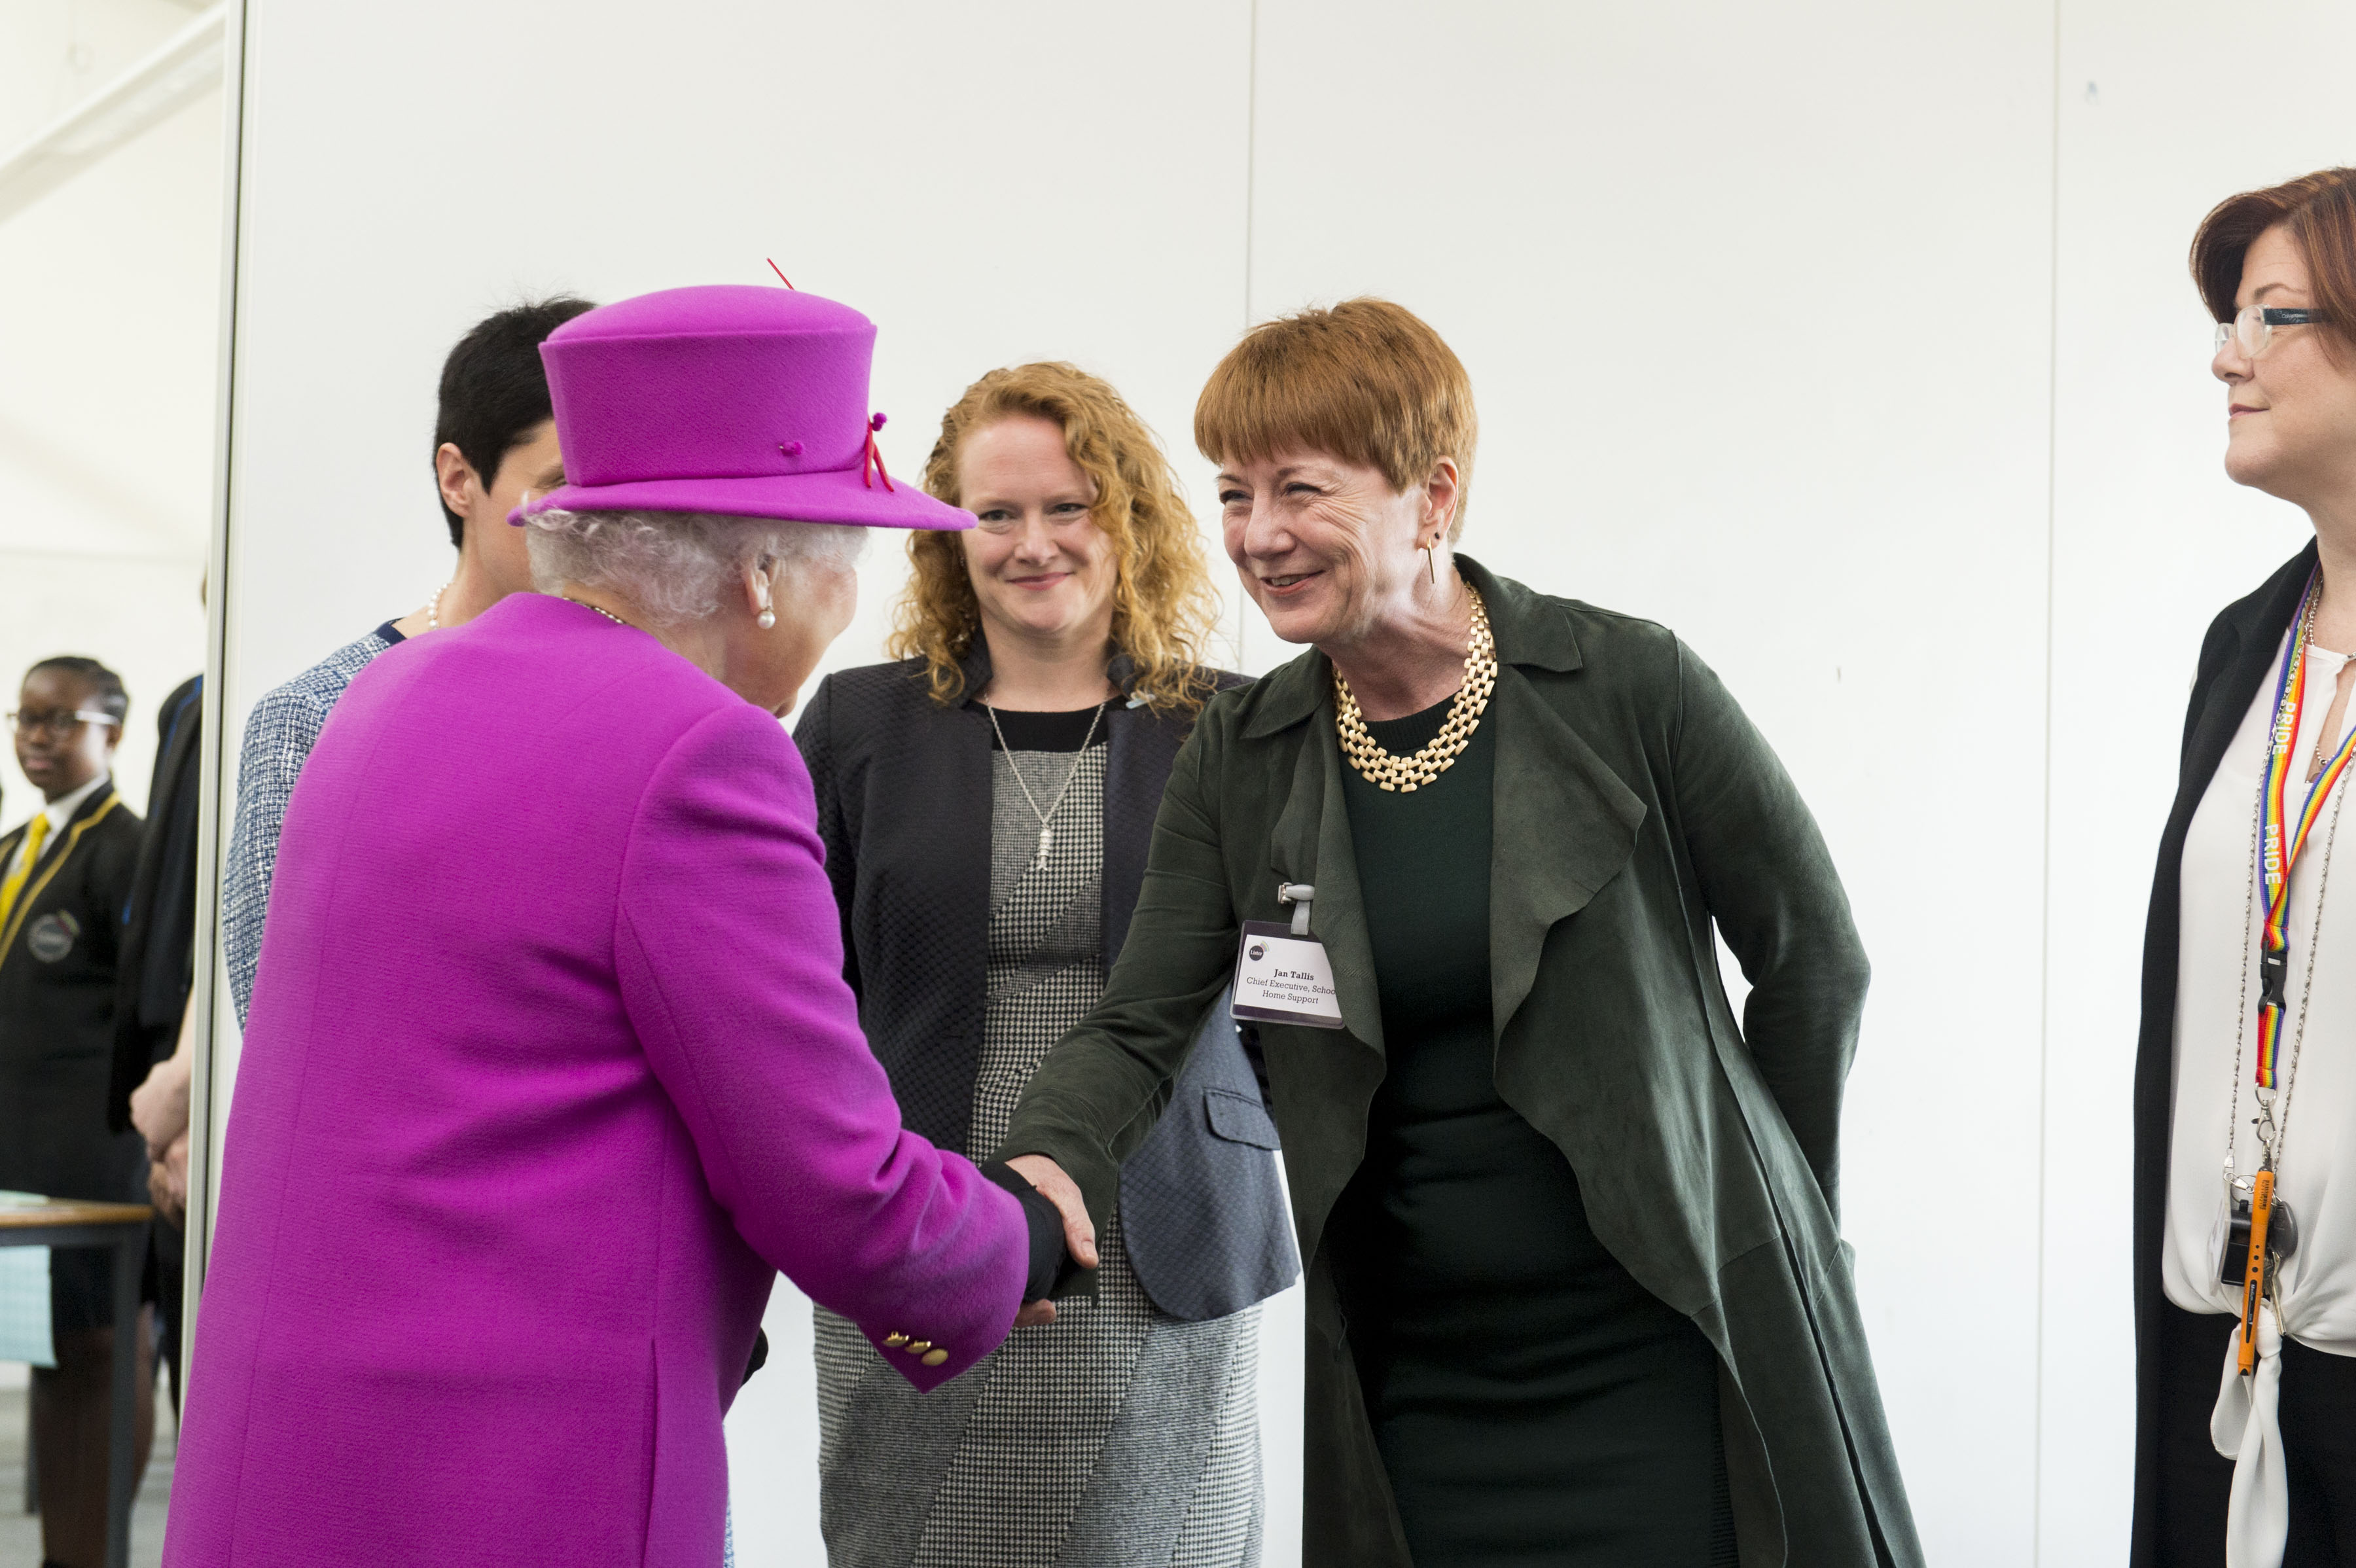 HM The Queen visit. Queens Trust - Lister Community School